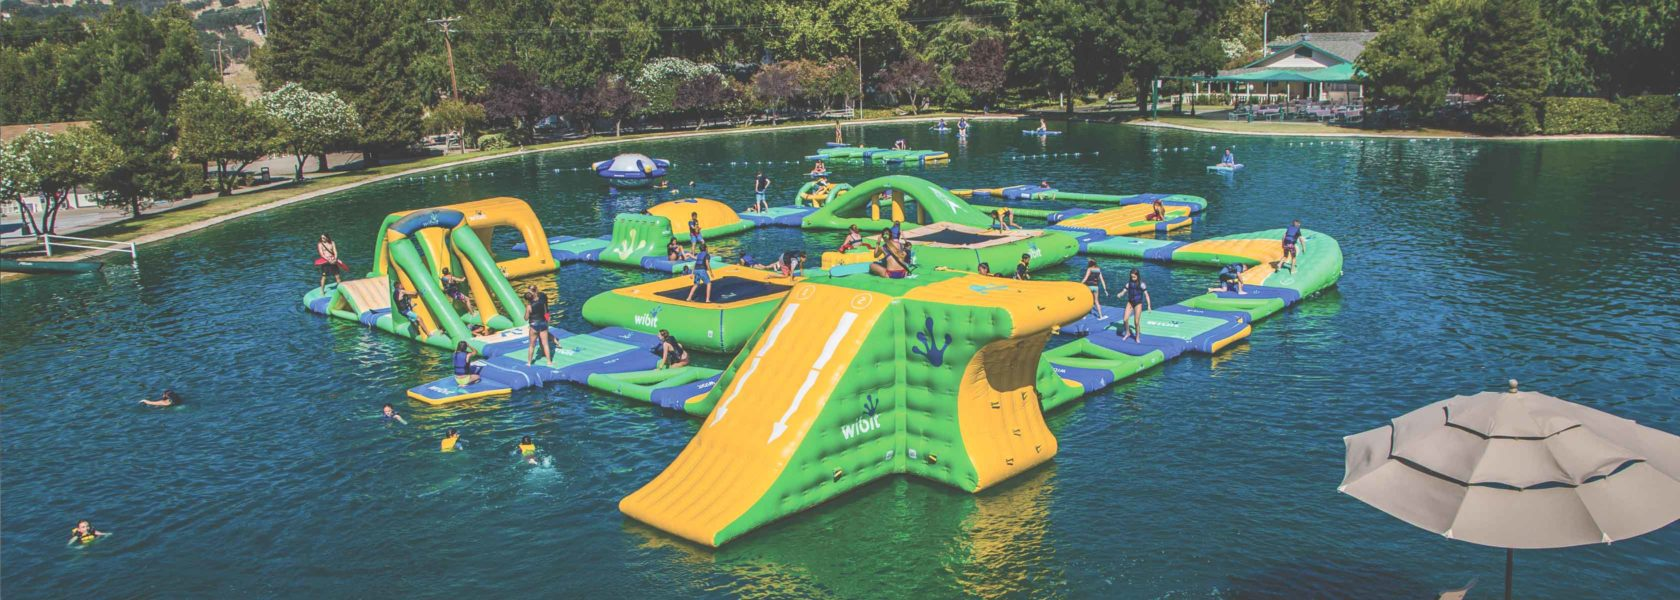 An inflatable obstacle course.